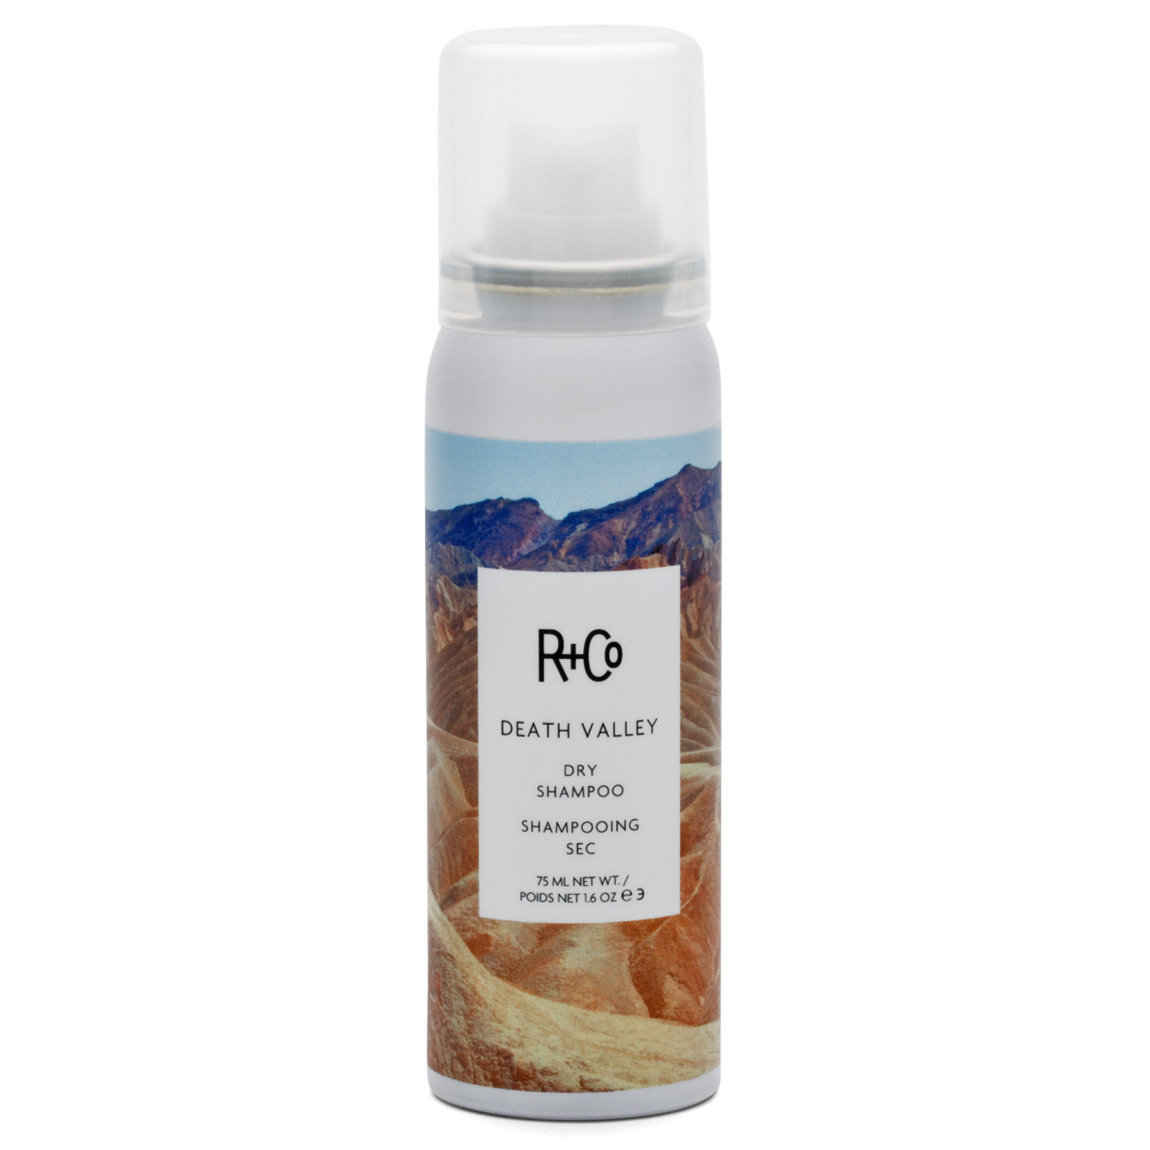 R+Co Death Valley Dry Shampoo 1.6 oz product smear.